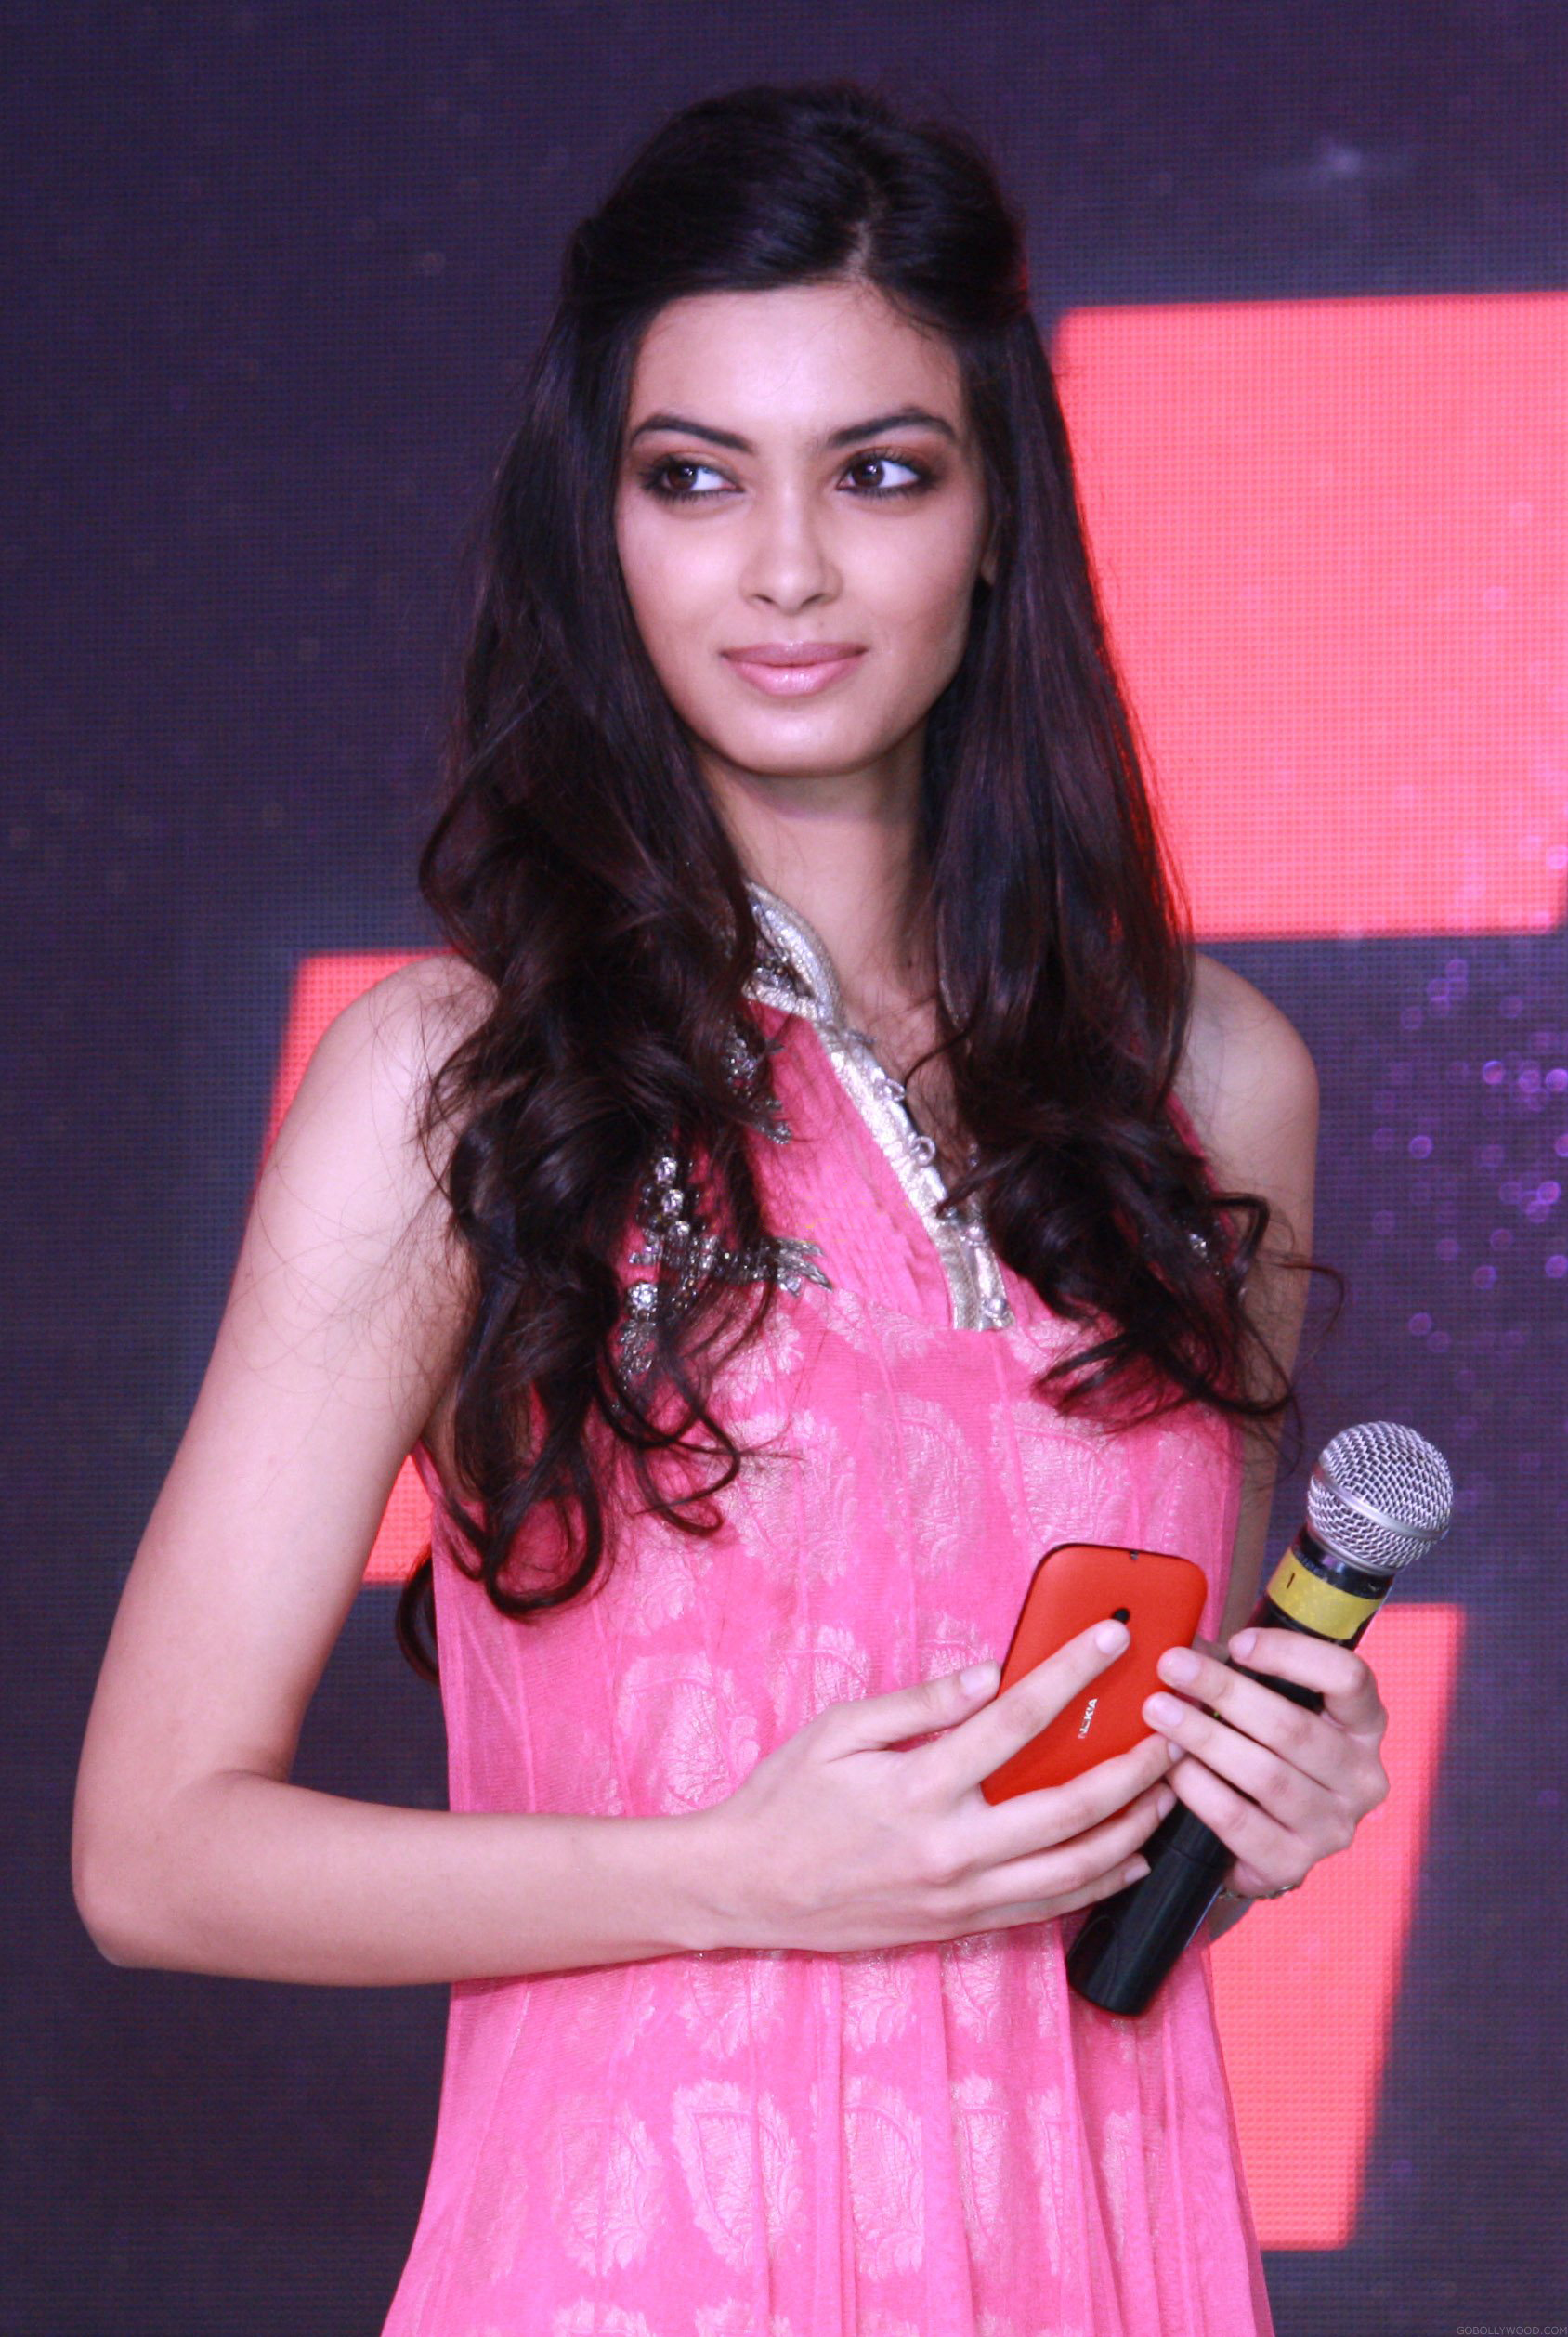 Full Hd Wallpaper Pack Free Download Diana Penty Wallpapers High Quality Download Free